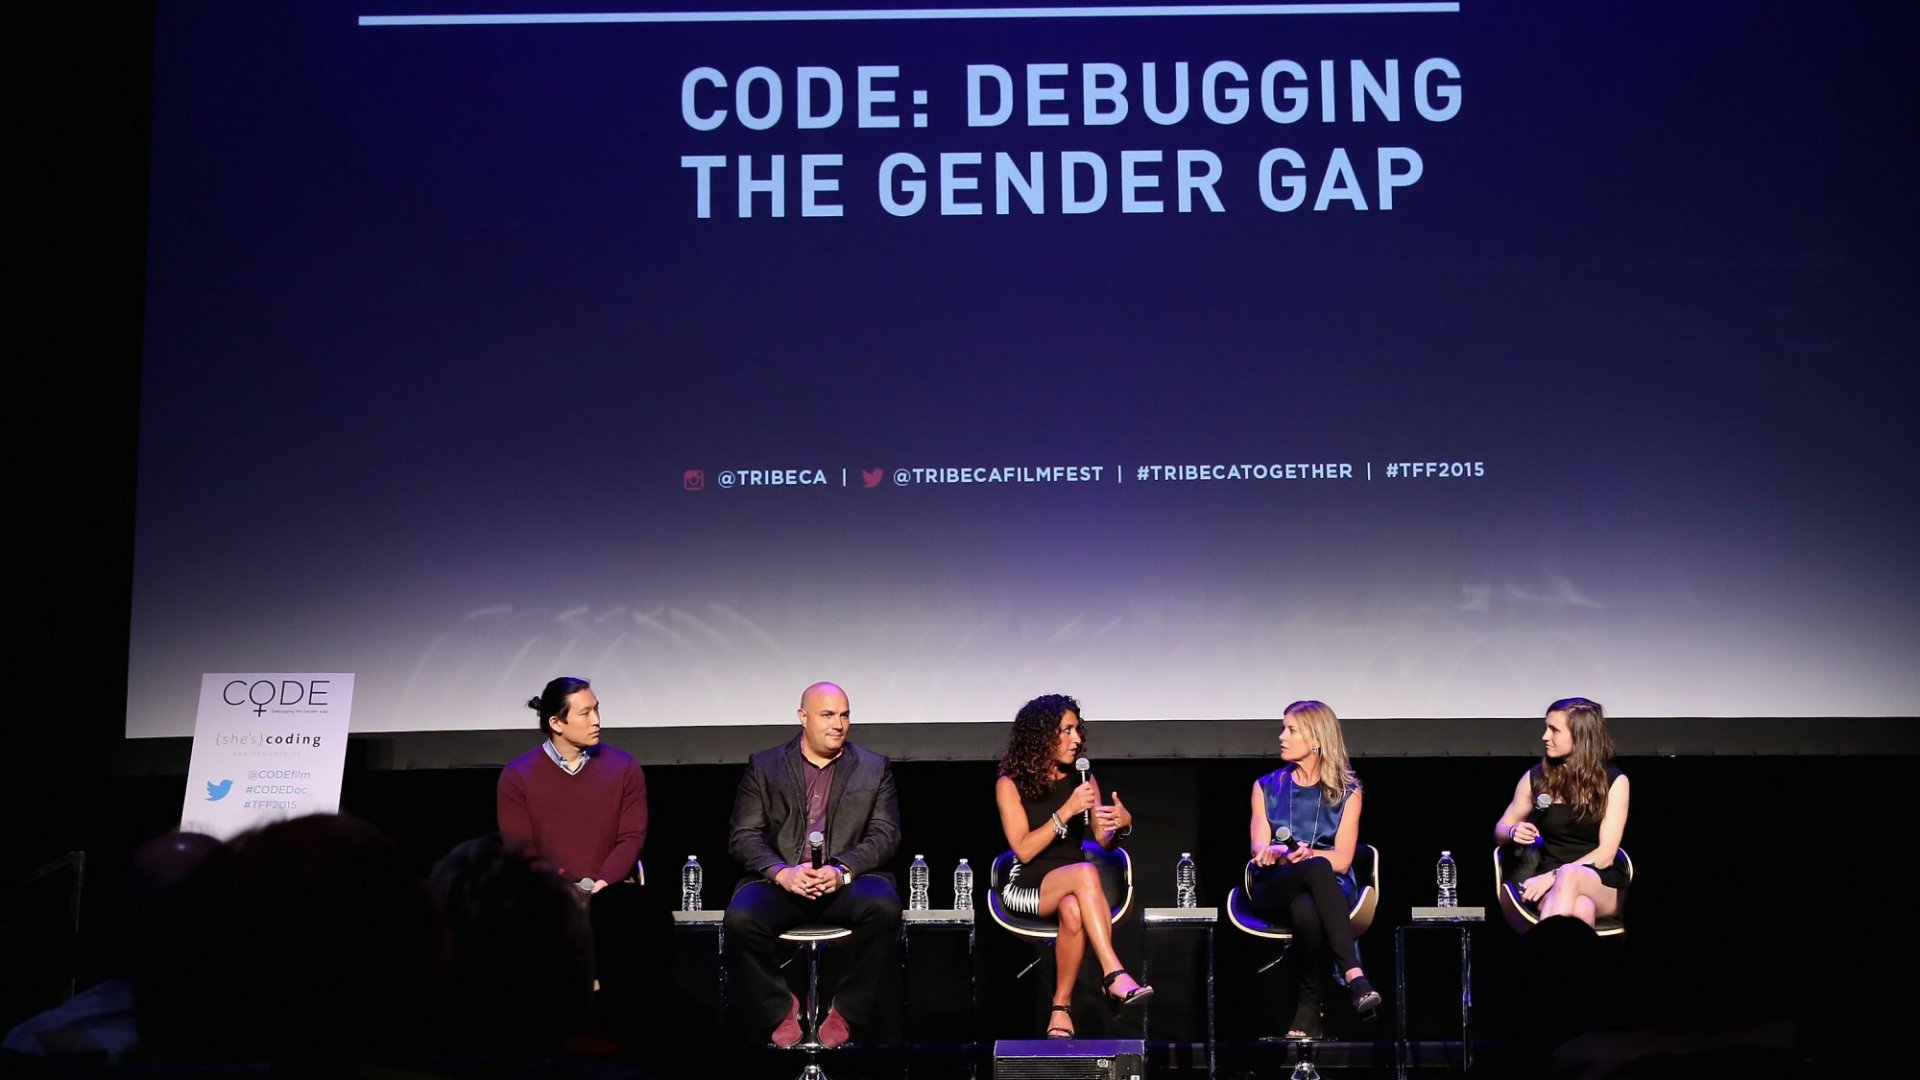 One Woman's Quest to Expose 'Brogrammers' and Sexism in Tech